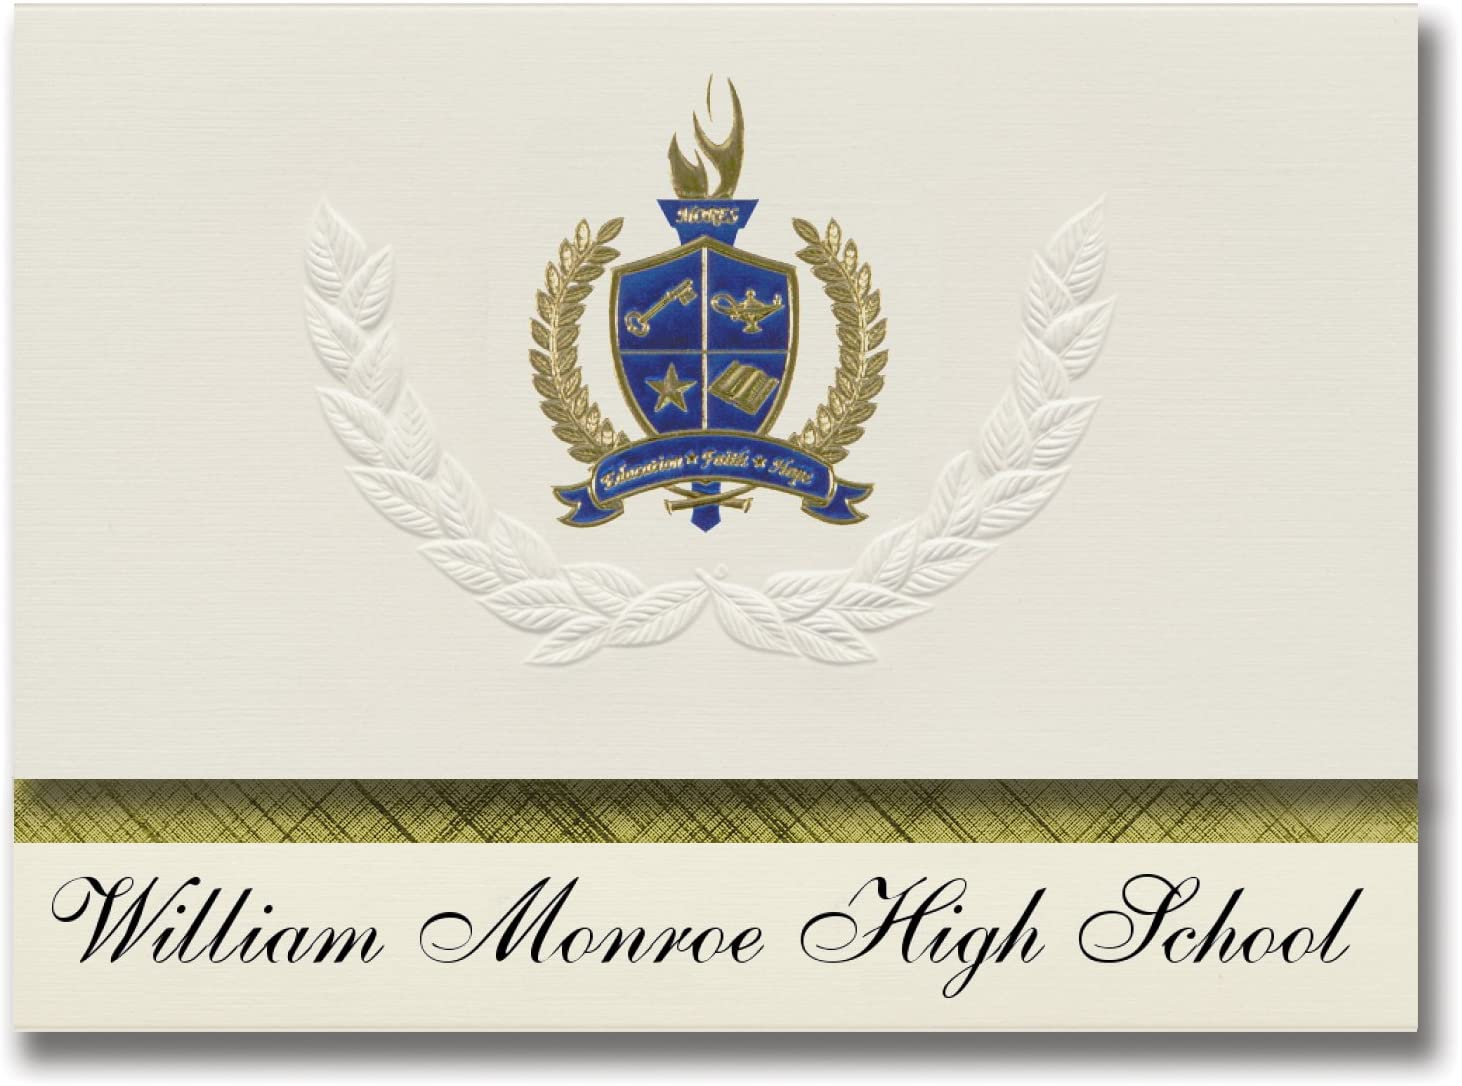 Signature Announcements William Monroe High School (Stanardsville, VA) Graduation Announcements, Presidential style, Basic package of 25 with Gold & Blue Metallic Foil seal